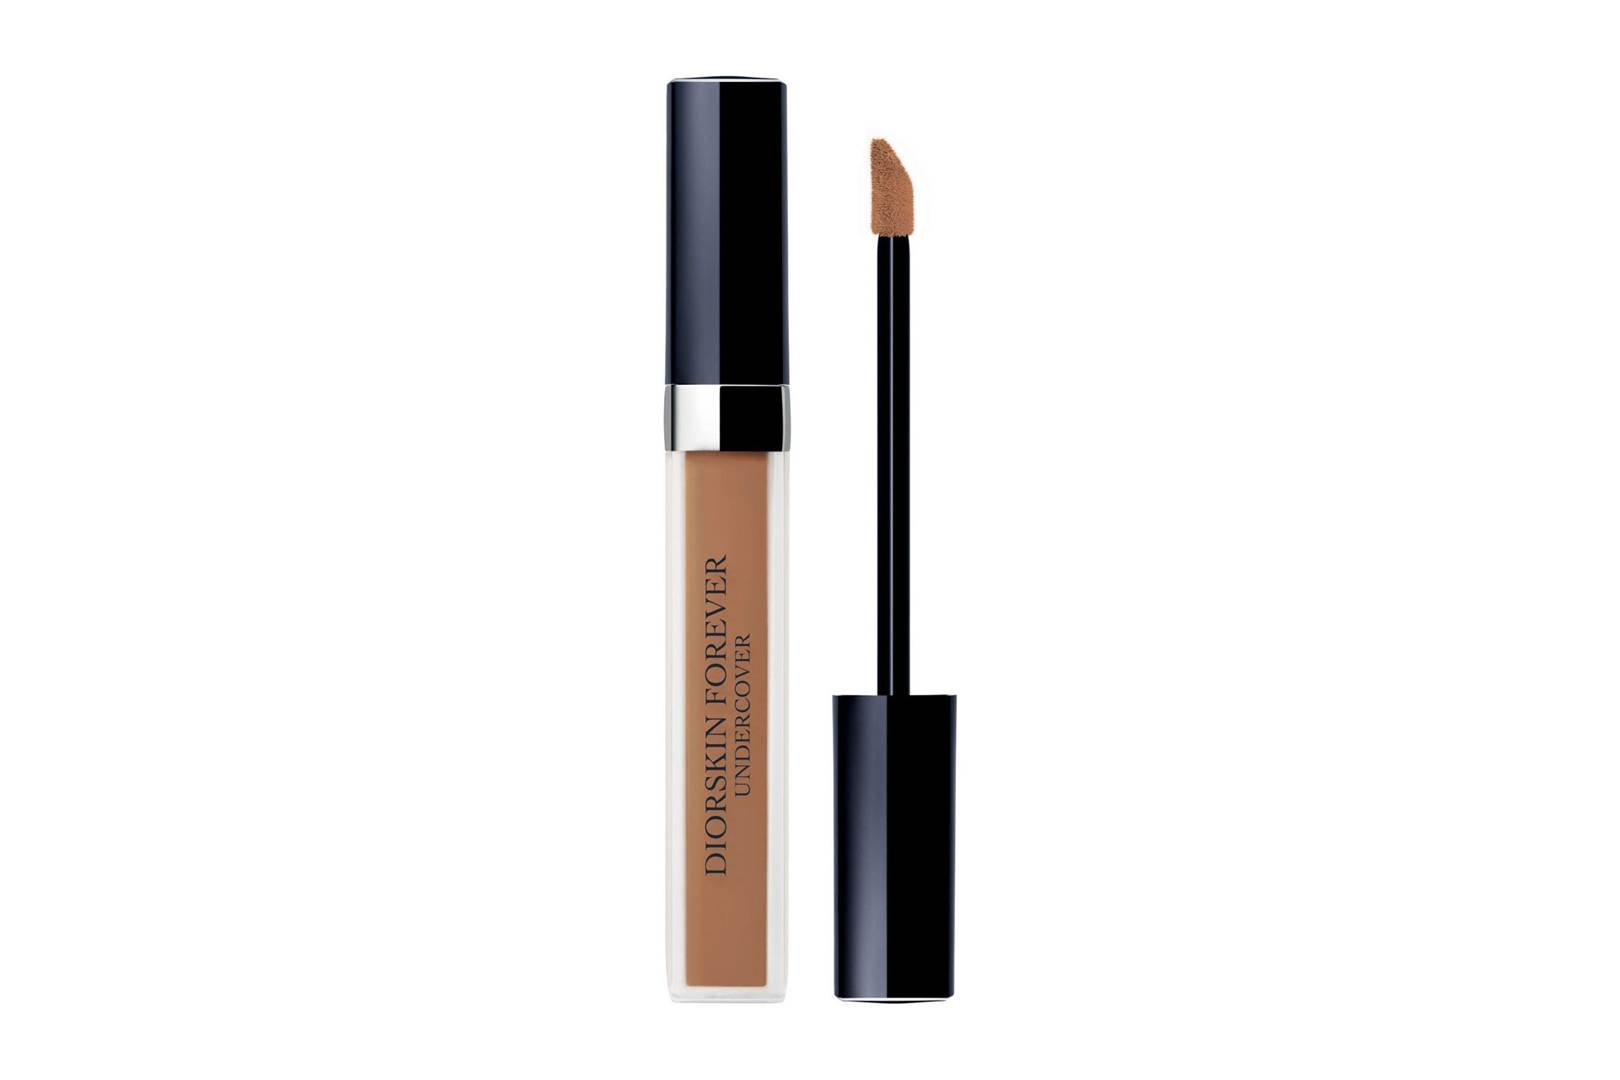 Best Concealer 2019 For Under Eyes, Blemishes & Dark Circles